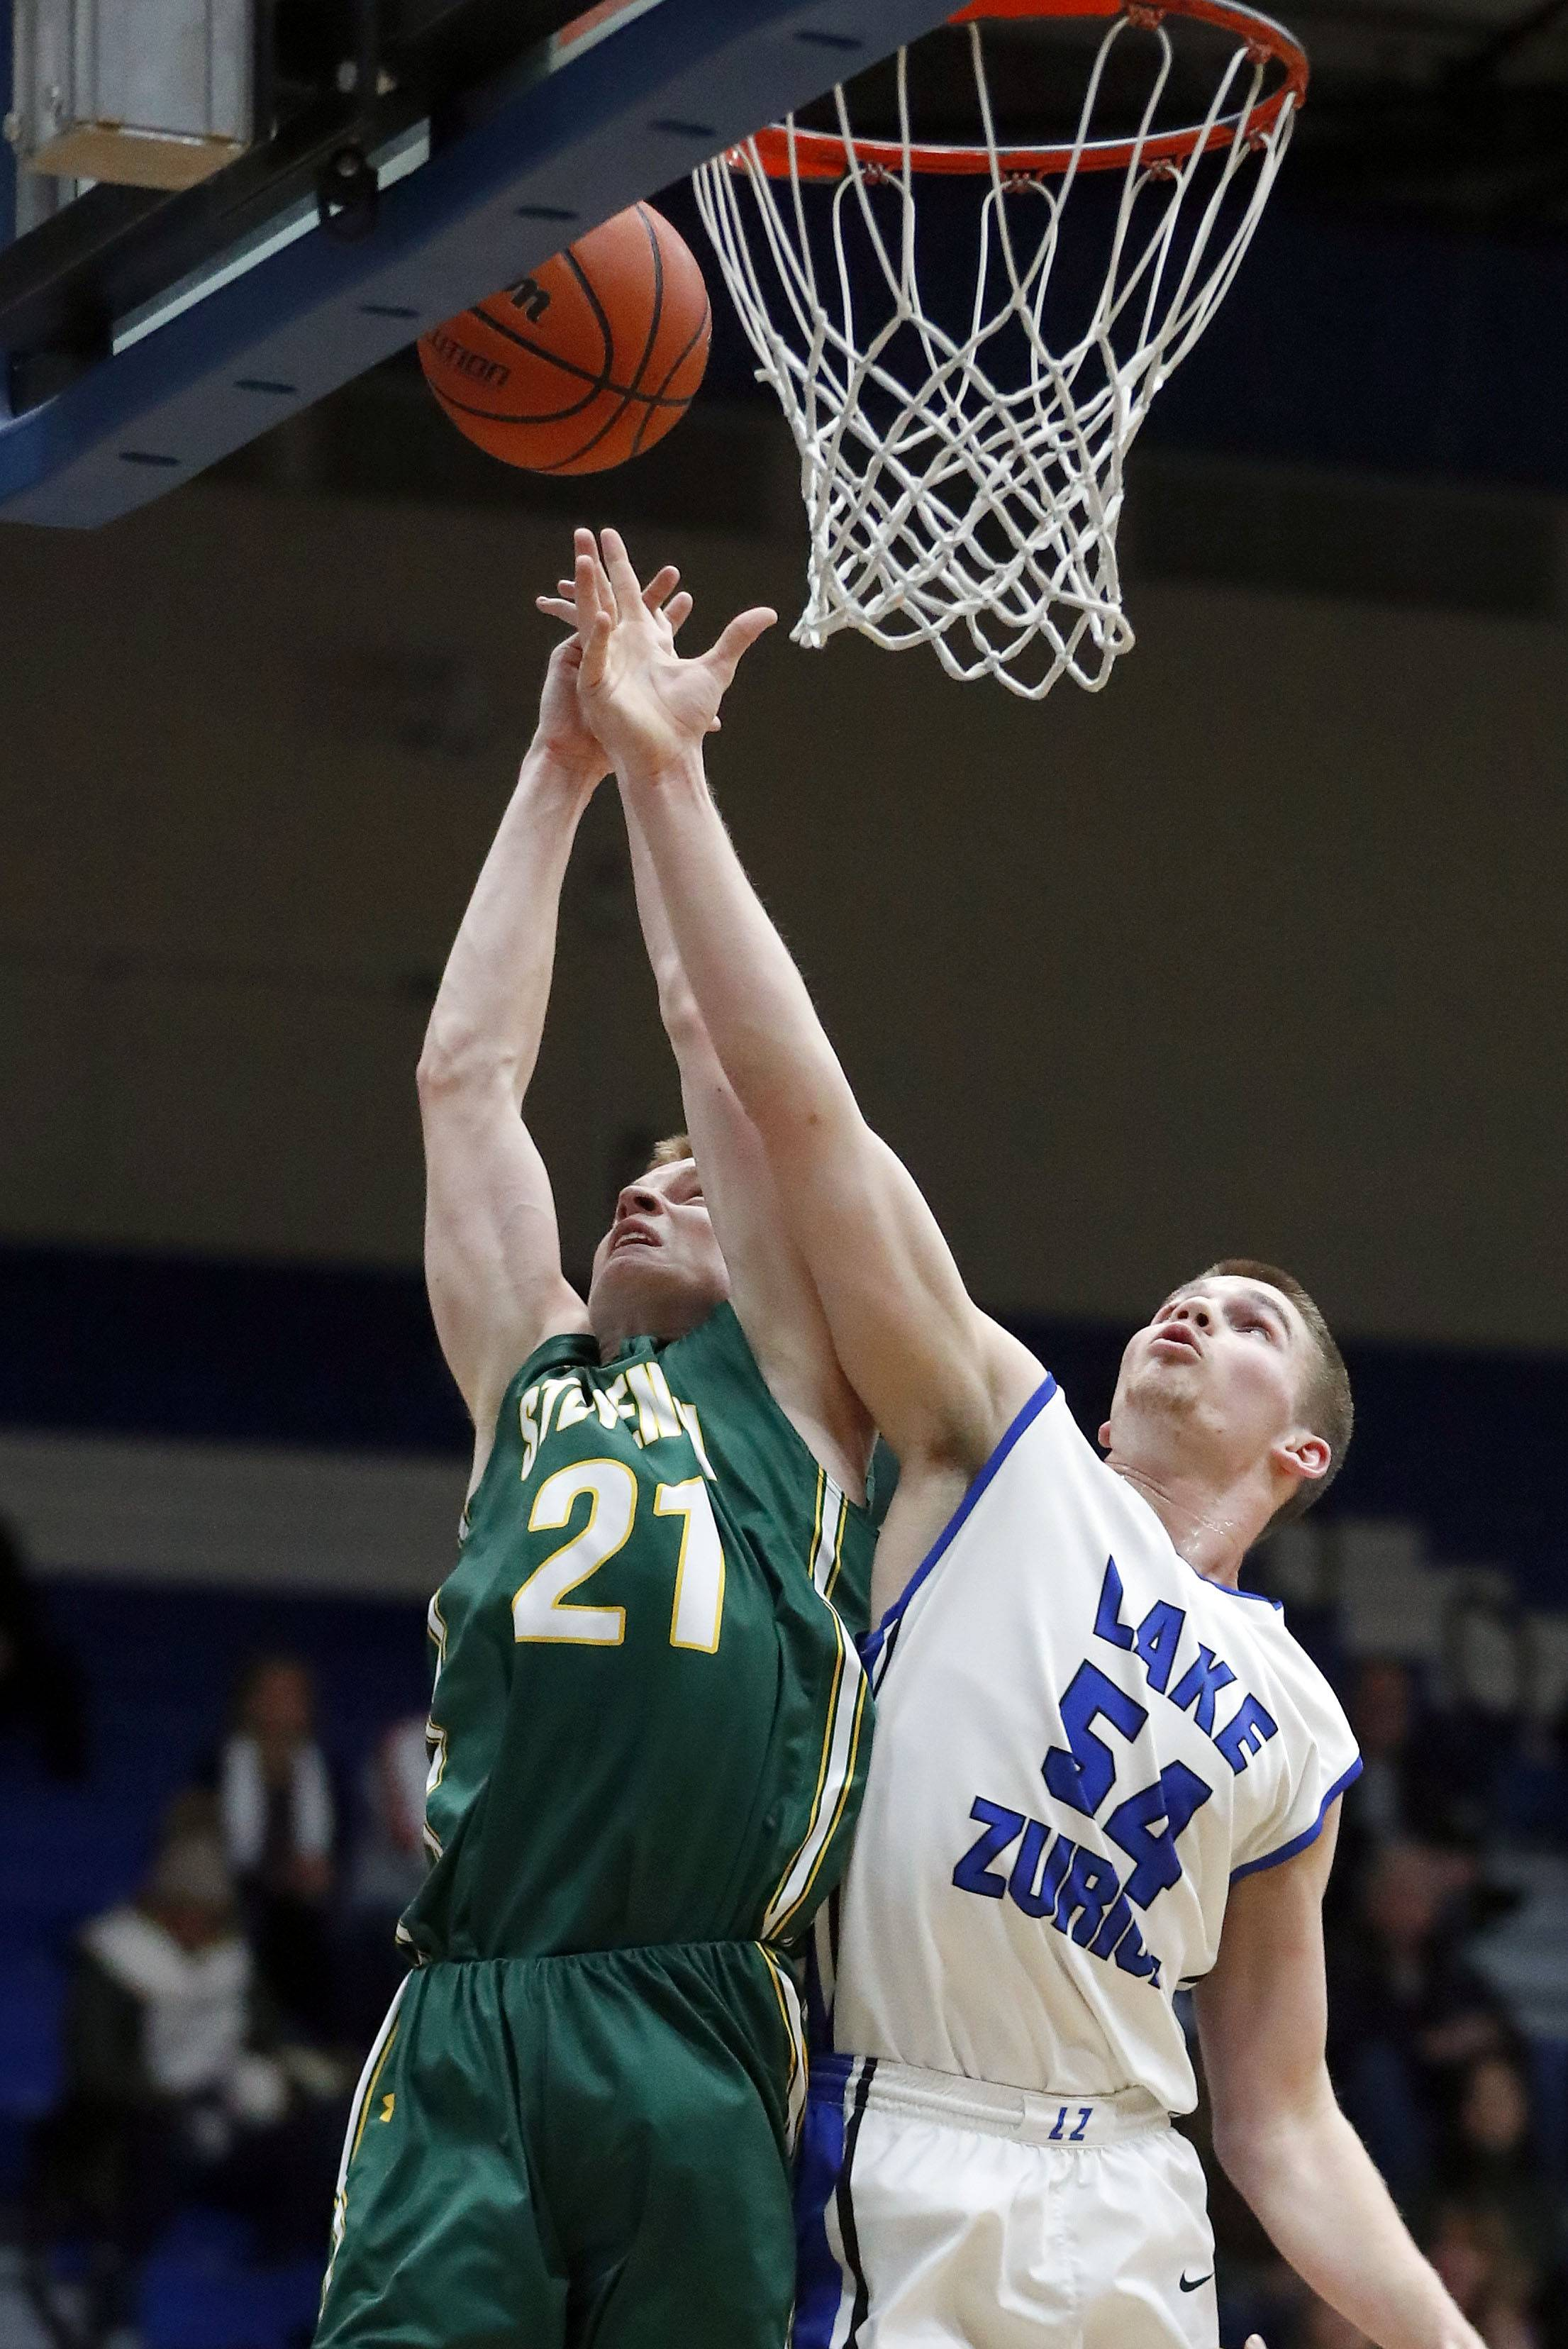 Lake Zurich's Peter DiCerbo (54) and Stevenson's Jackson Qualley will battle again on Friday, April 13 in the Lake County Senior Shootout. DiCerbo will play for the West team and Qualley for the East.